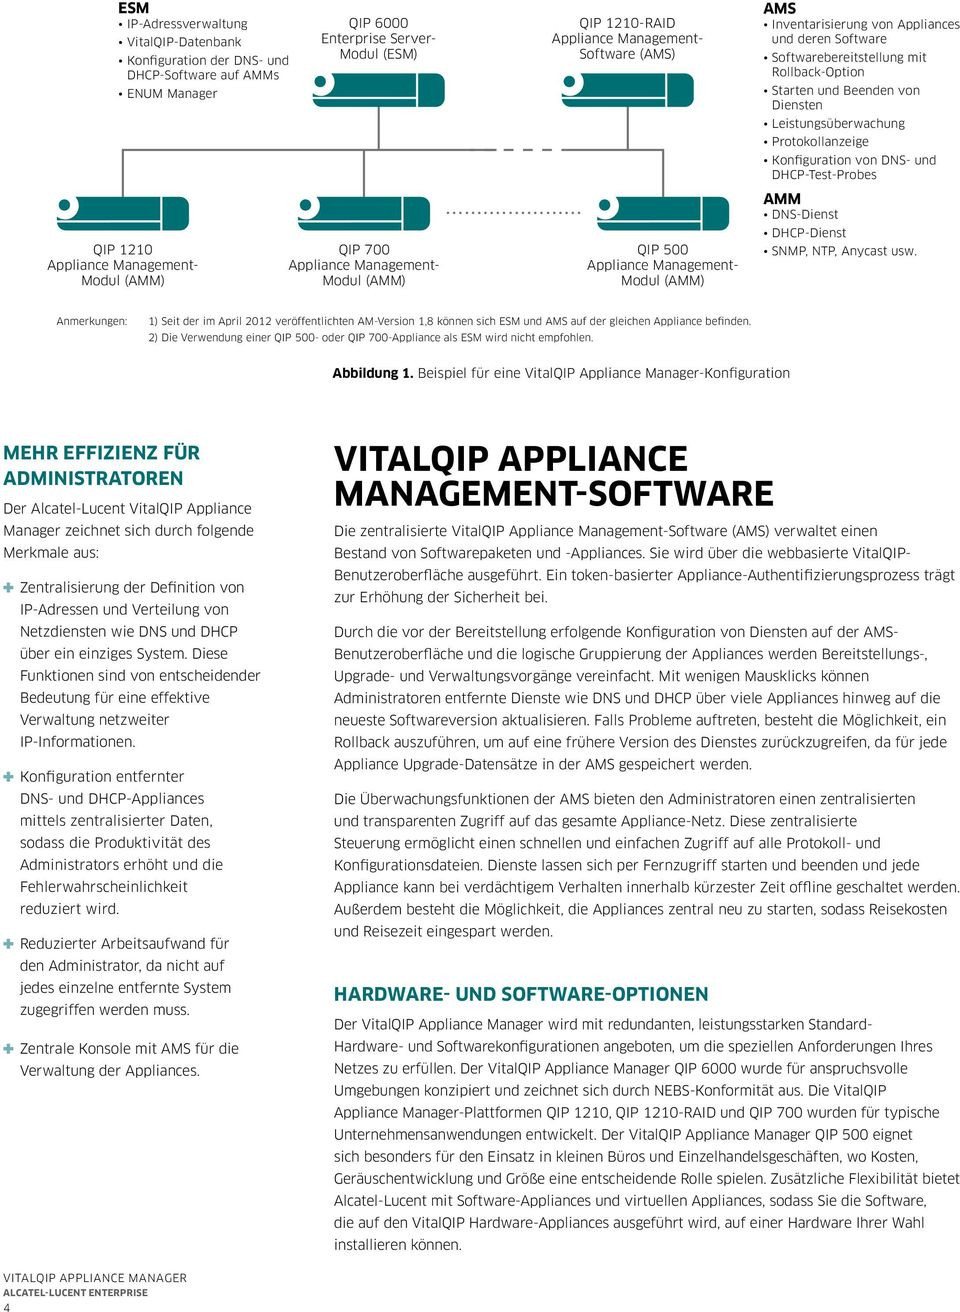 .. QIP 1210-RAID Appliance Management- Software (AMS) QIP 500 Appliance Management- Modul (AMM) AMS Inventarisierung von Appliances und deren Software Softwarebereitstellung mit Rollback-Option